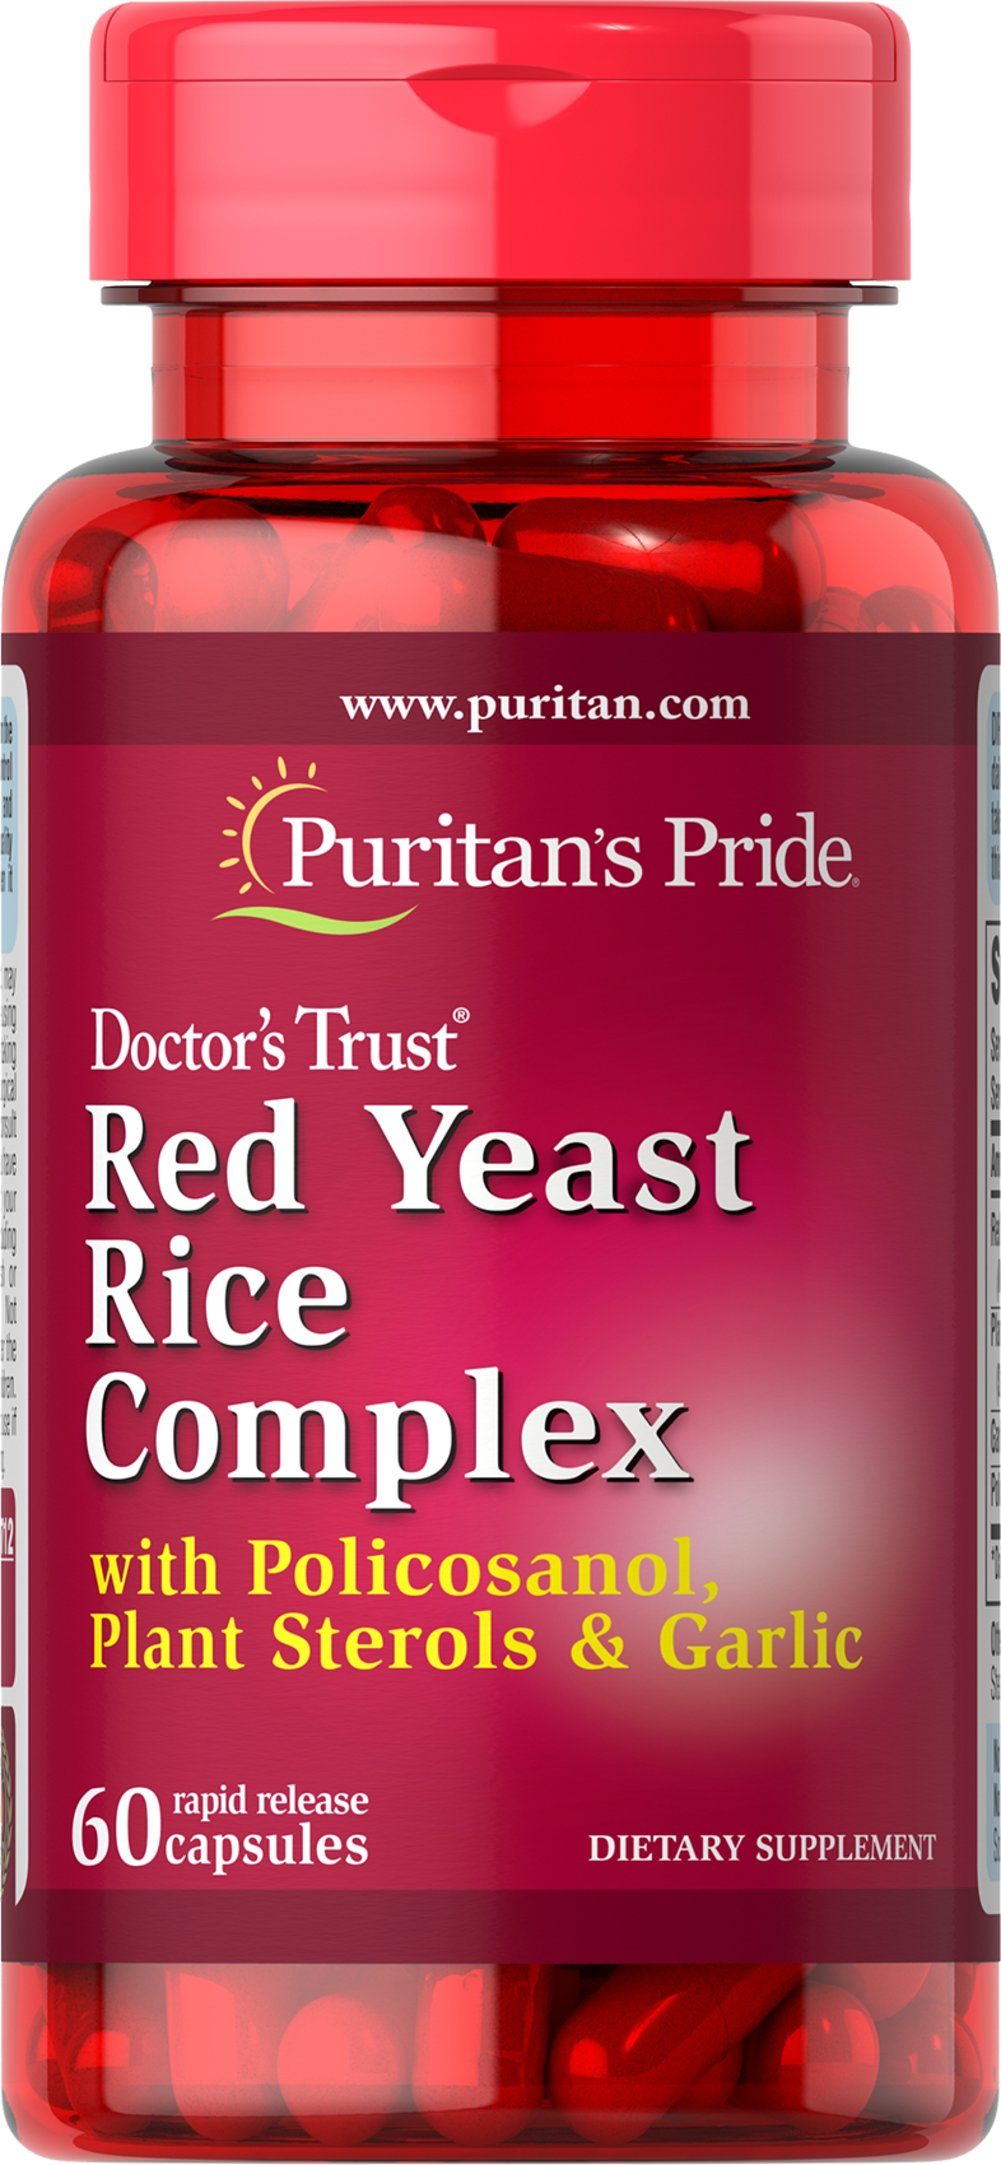 Red Yeast Rice Complex <p>Red Yeast Rice has been a staple food of the traditional Chinese diet for centuries. Valued as a main food source as well as for other uses, Red Yeast Rice can be a healthy addition to your diet.**  Two capsules contain 1200 mg of Red Yeast Rice Powder from the Chinese botanical Monascus purpureus, 500 mg Plant Sterols, 500 mg Garlic and 20 mg Policosanol.</p> 60 Capsules  $31.89